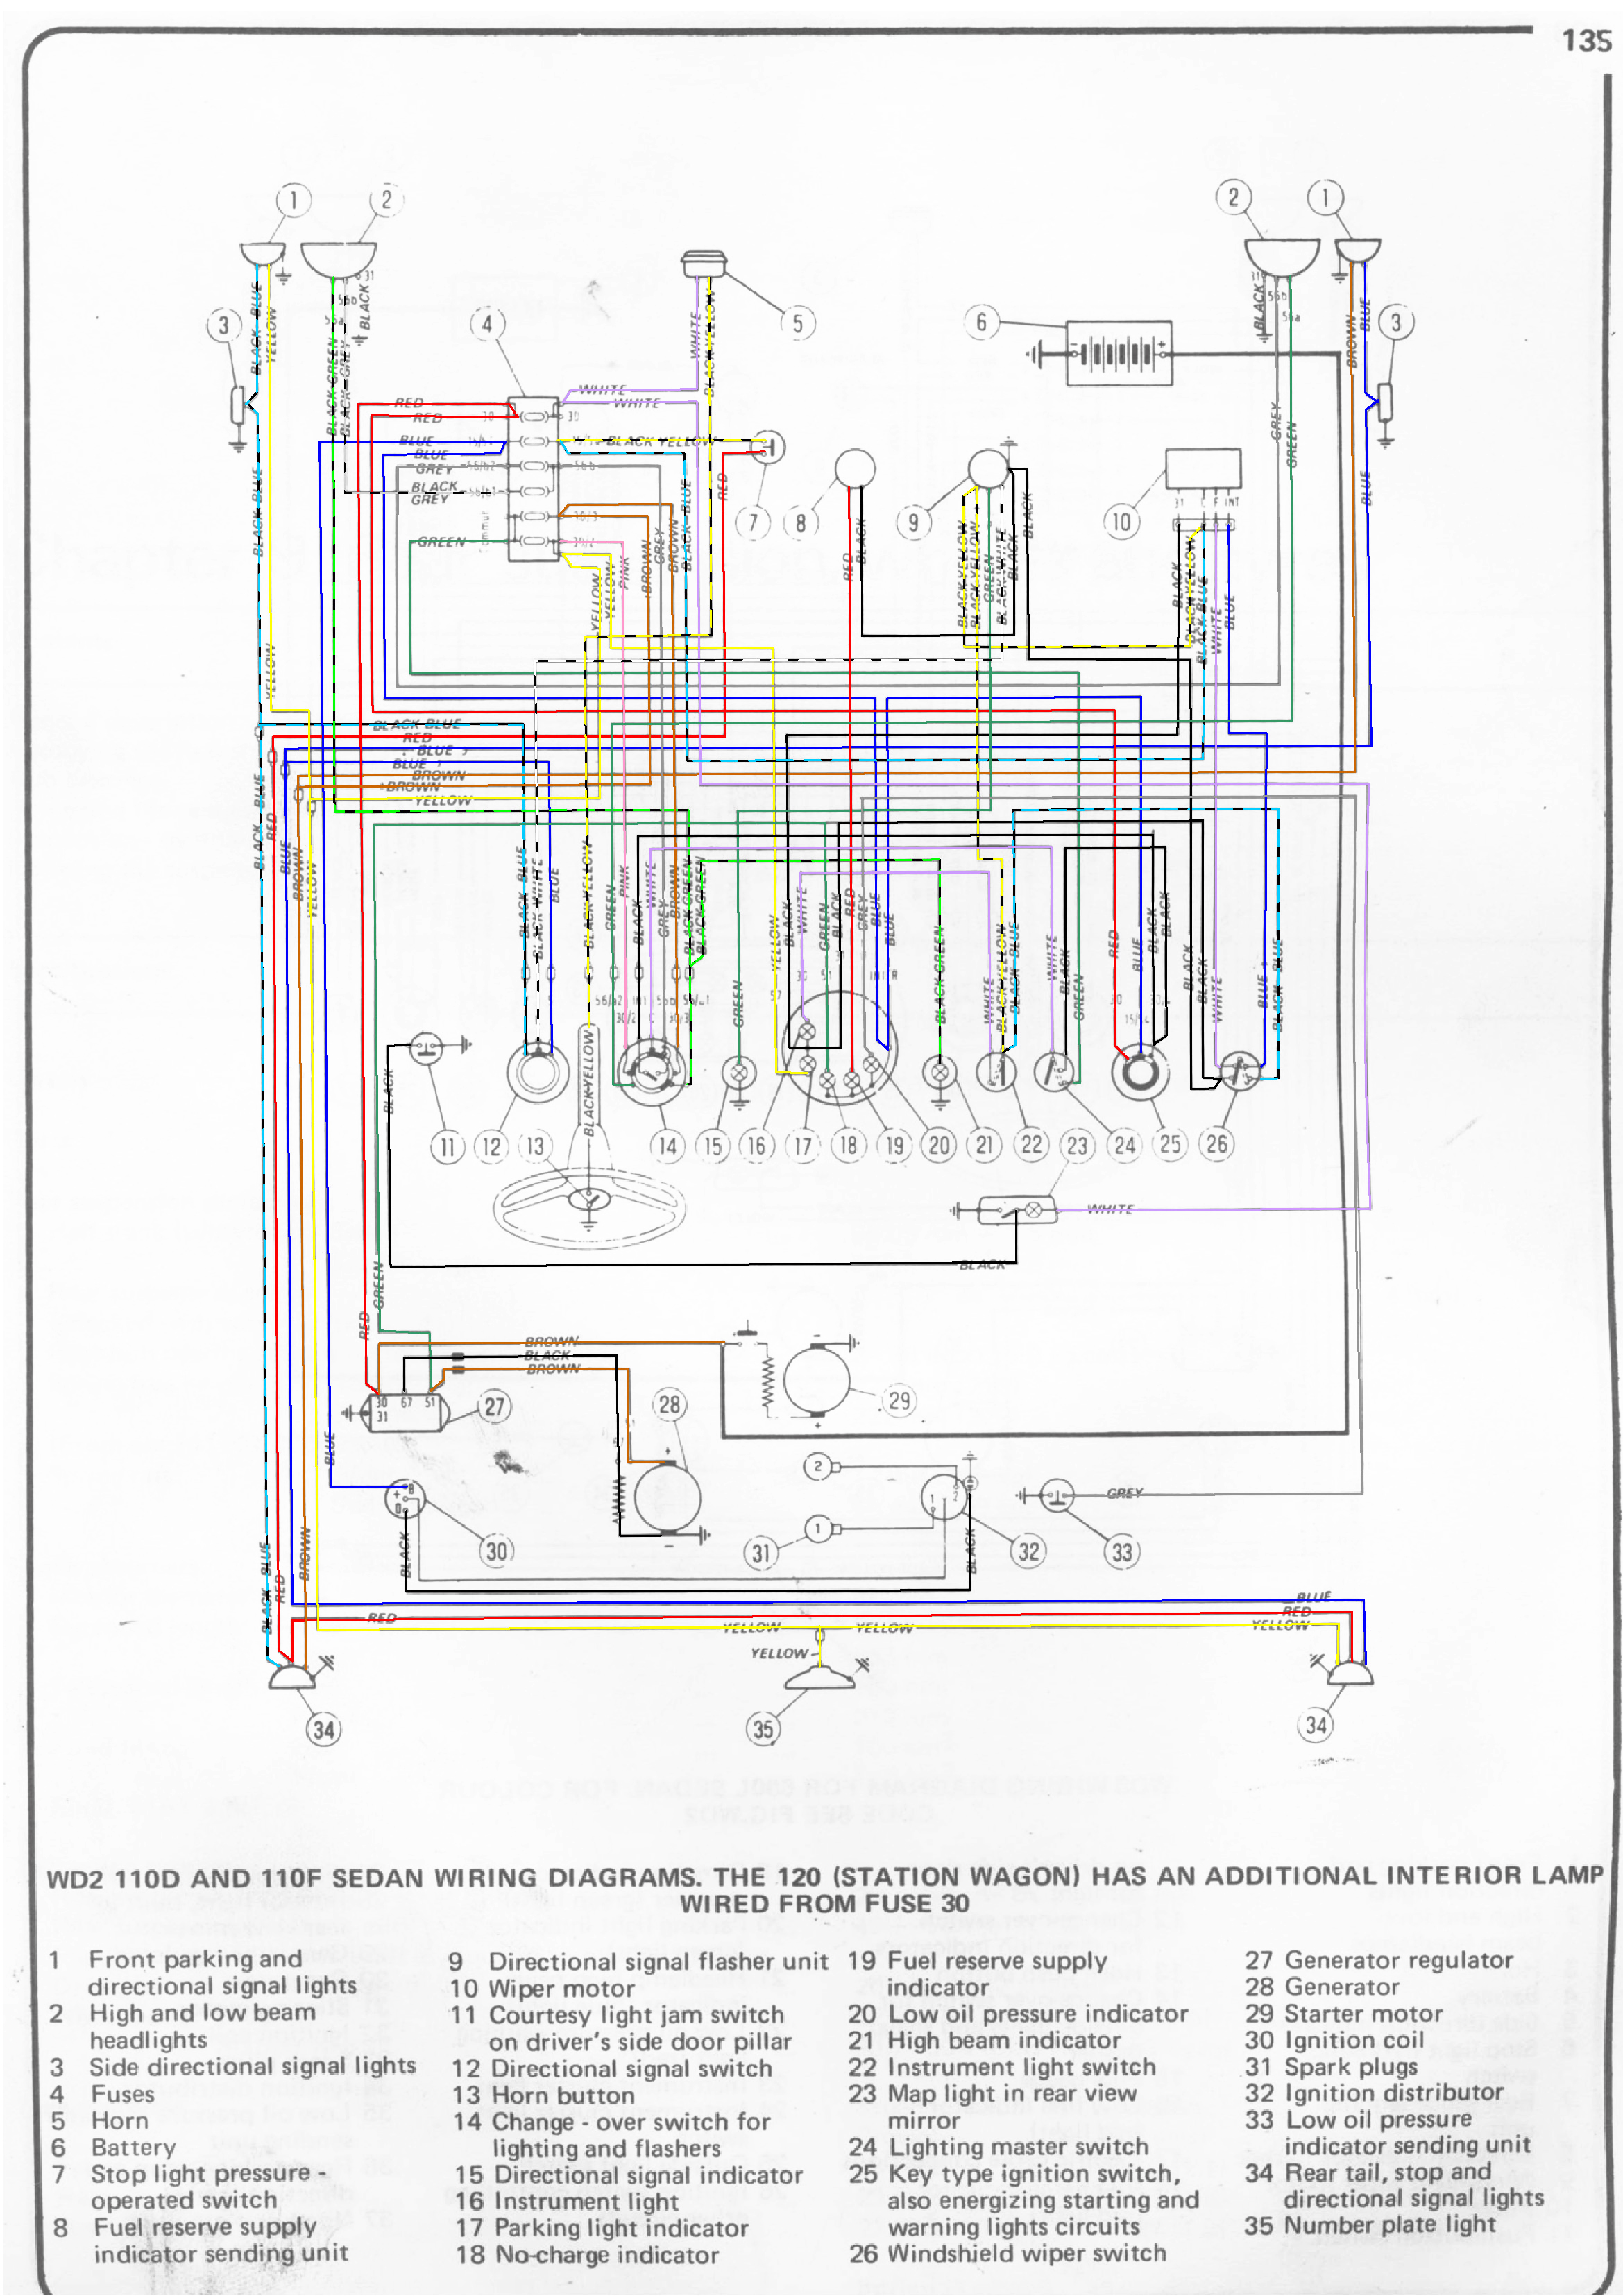 2004 Suzuki Ltz 400 Wiring Diagram Will Be A Thing 2003 Diagrams Exelent Drz Photos Yamaha Yfz 450